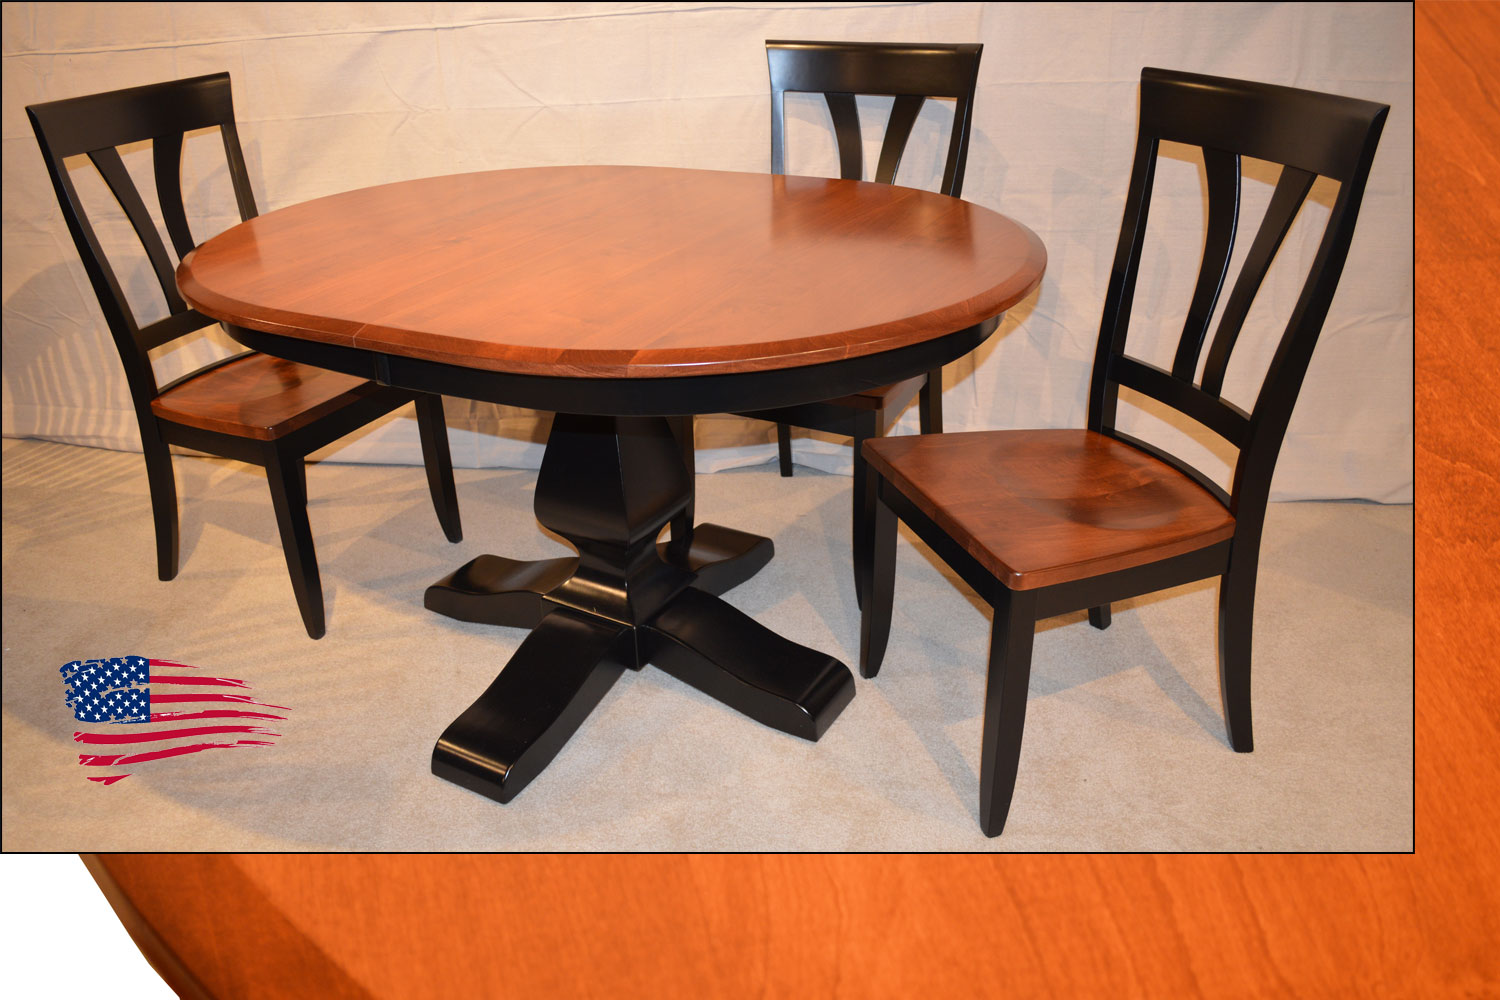 amish french style table - Jasen's Fine Furniture- Since 1951